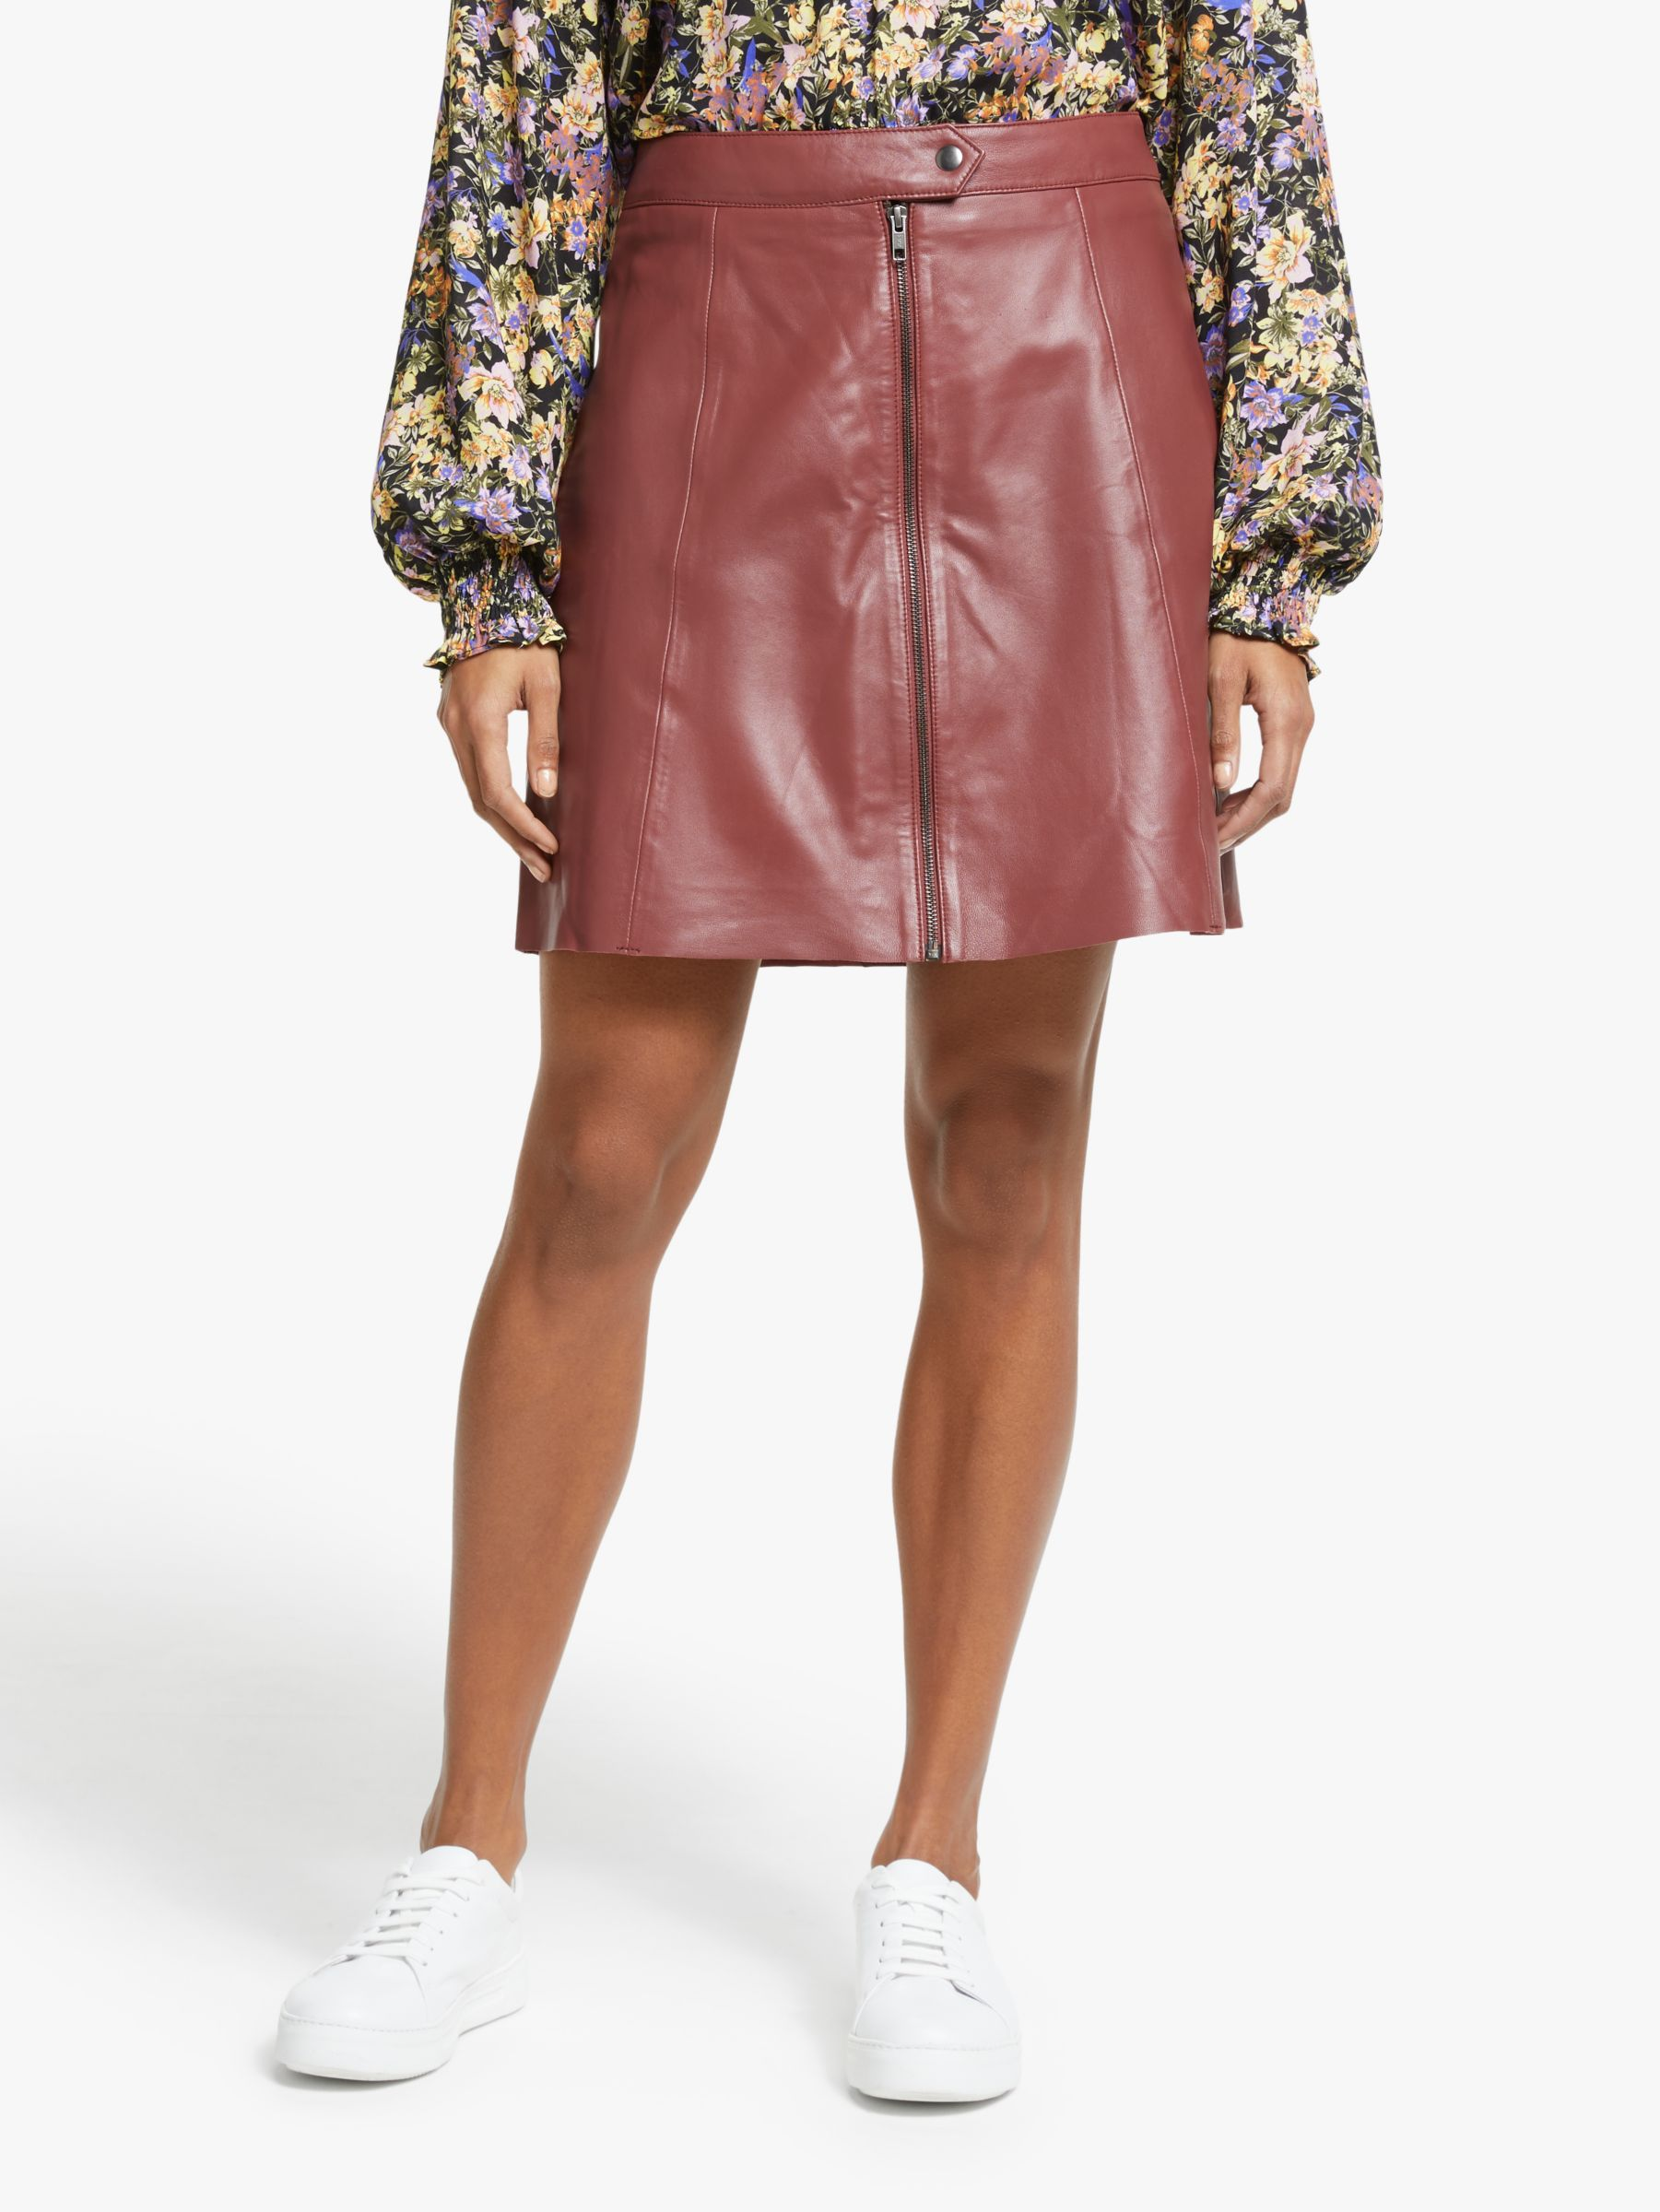 Y.a.s Y.A.S A-Line Mini Leather Skirt, Fired Brick